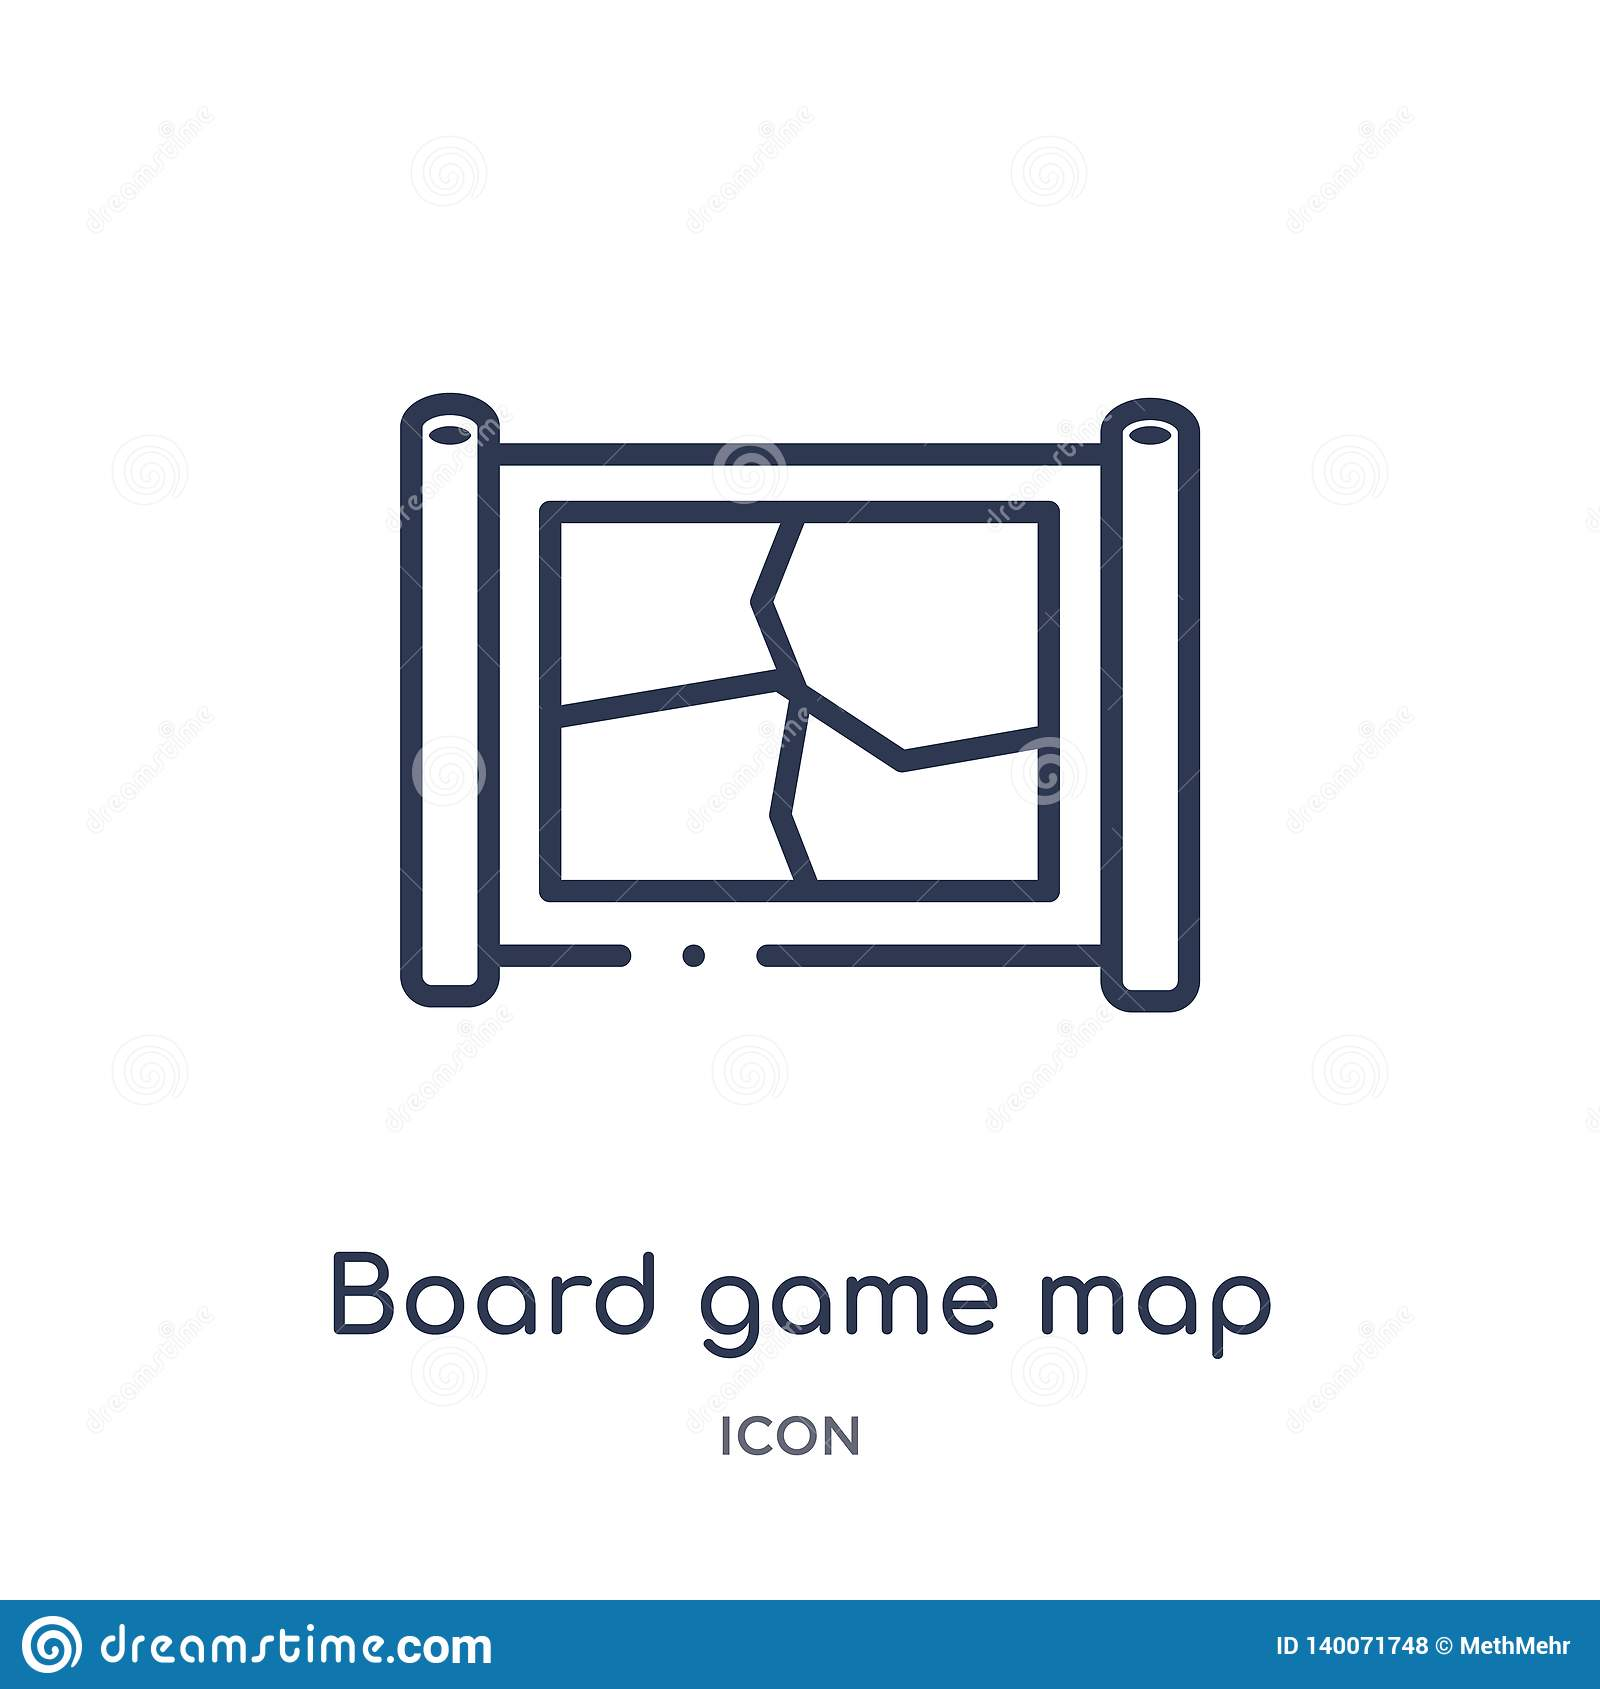 Linear board game map icon from Entertainment outline collection. Thin line board game map icon isolated on white background.